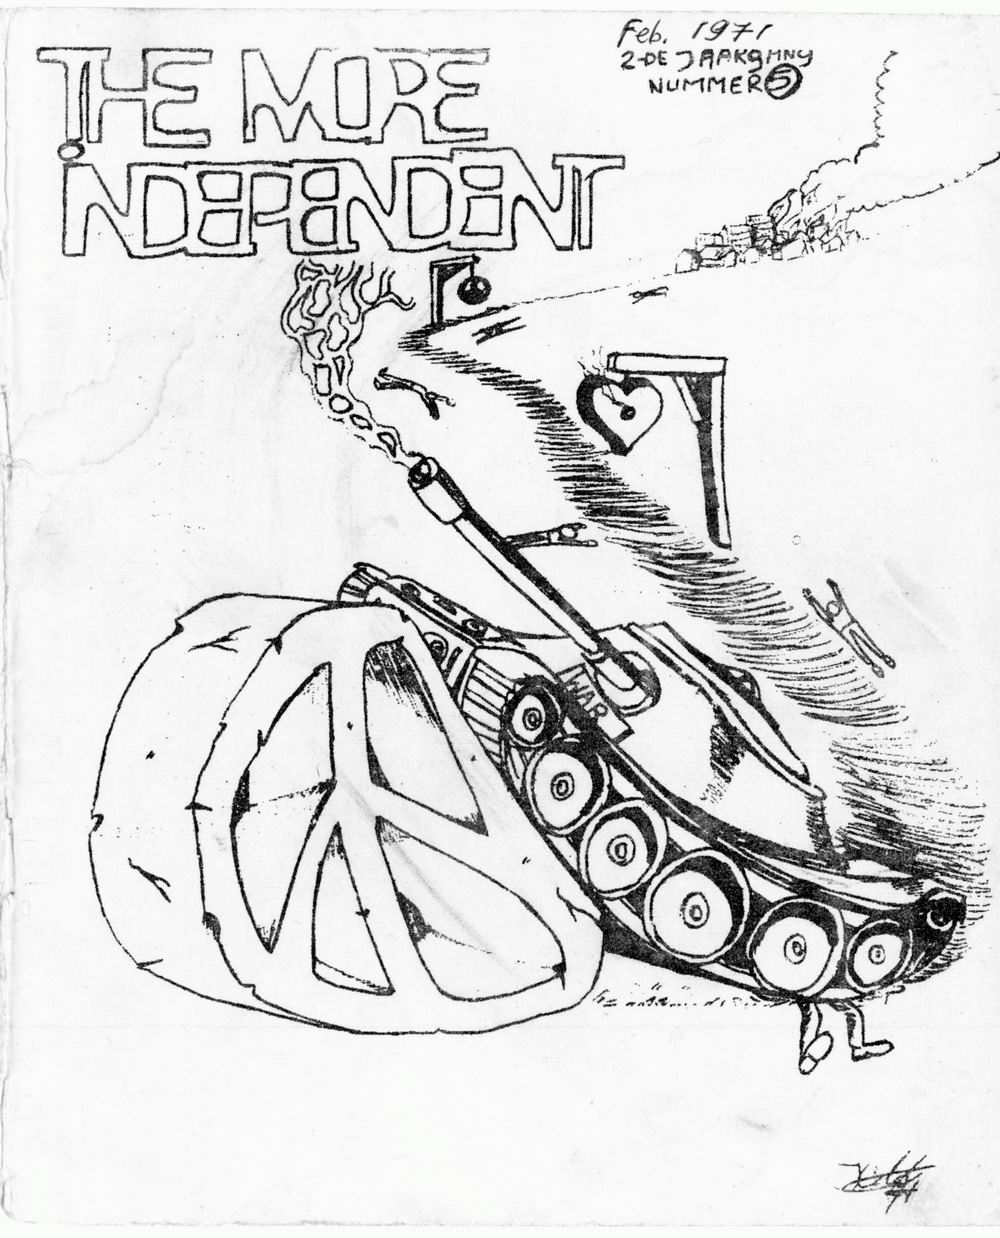 More Independent, 2, 5 (1971), cover